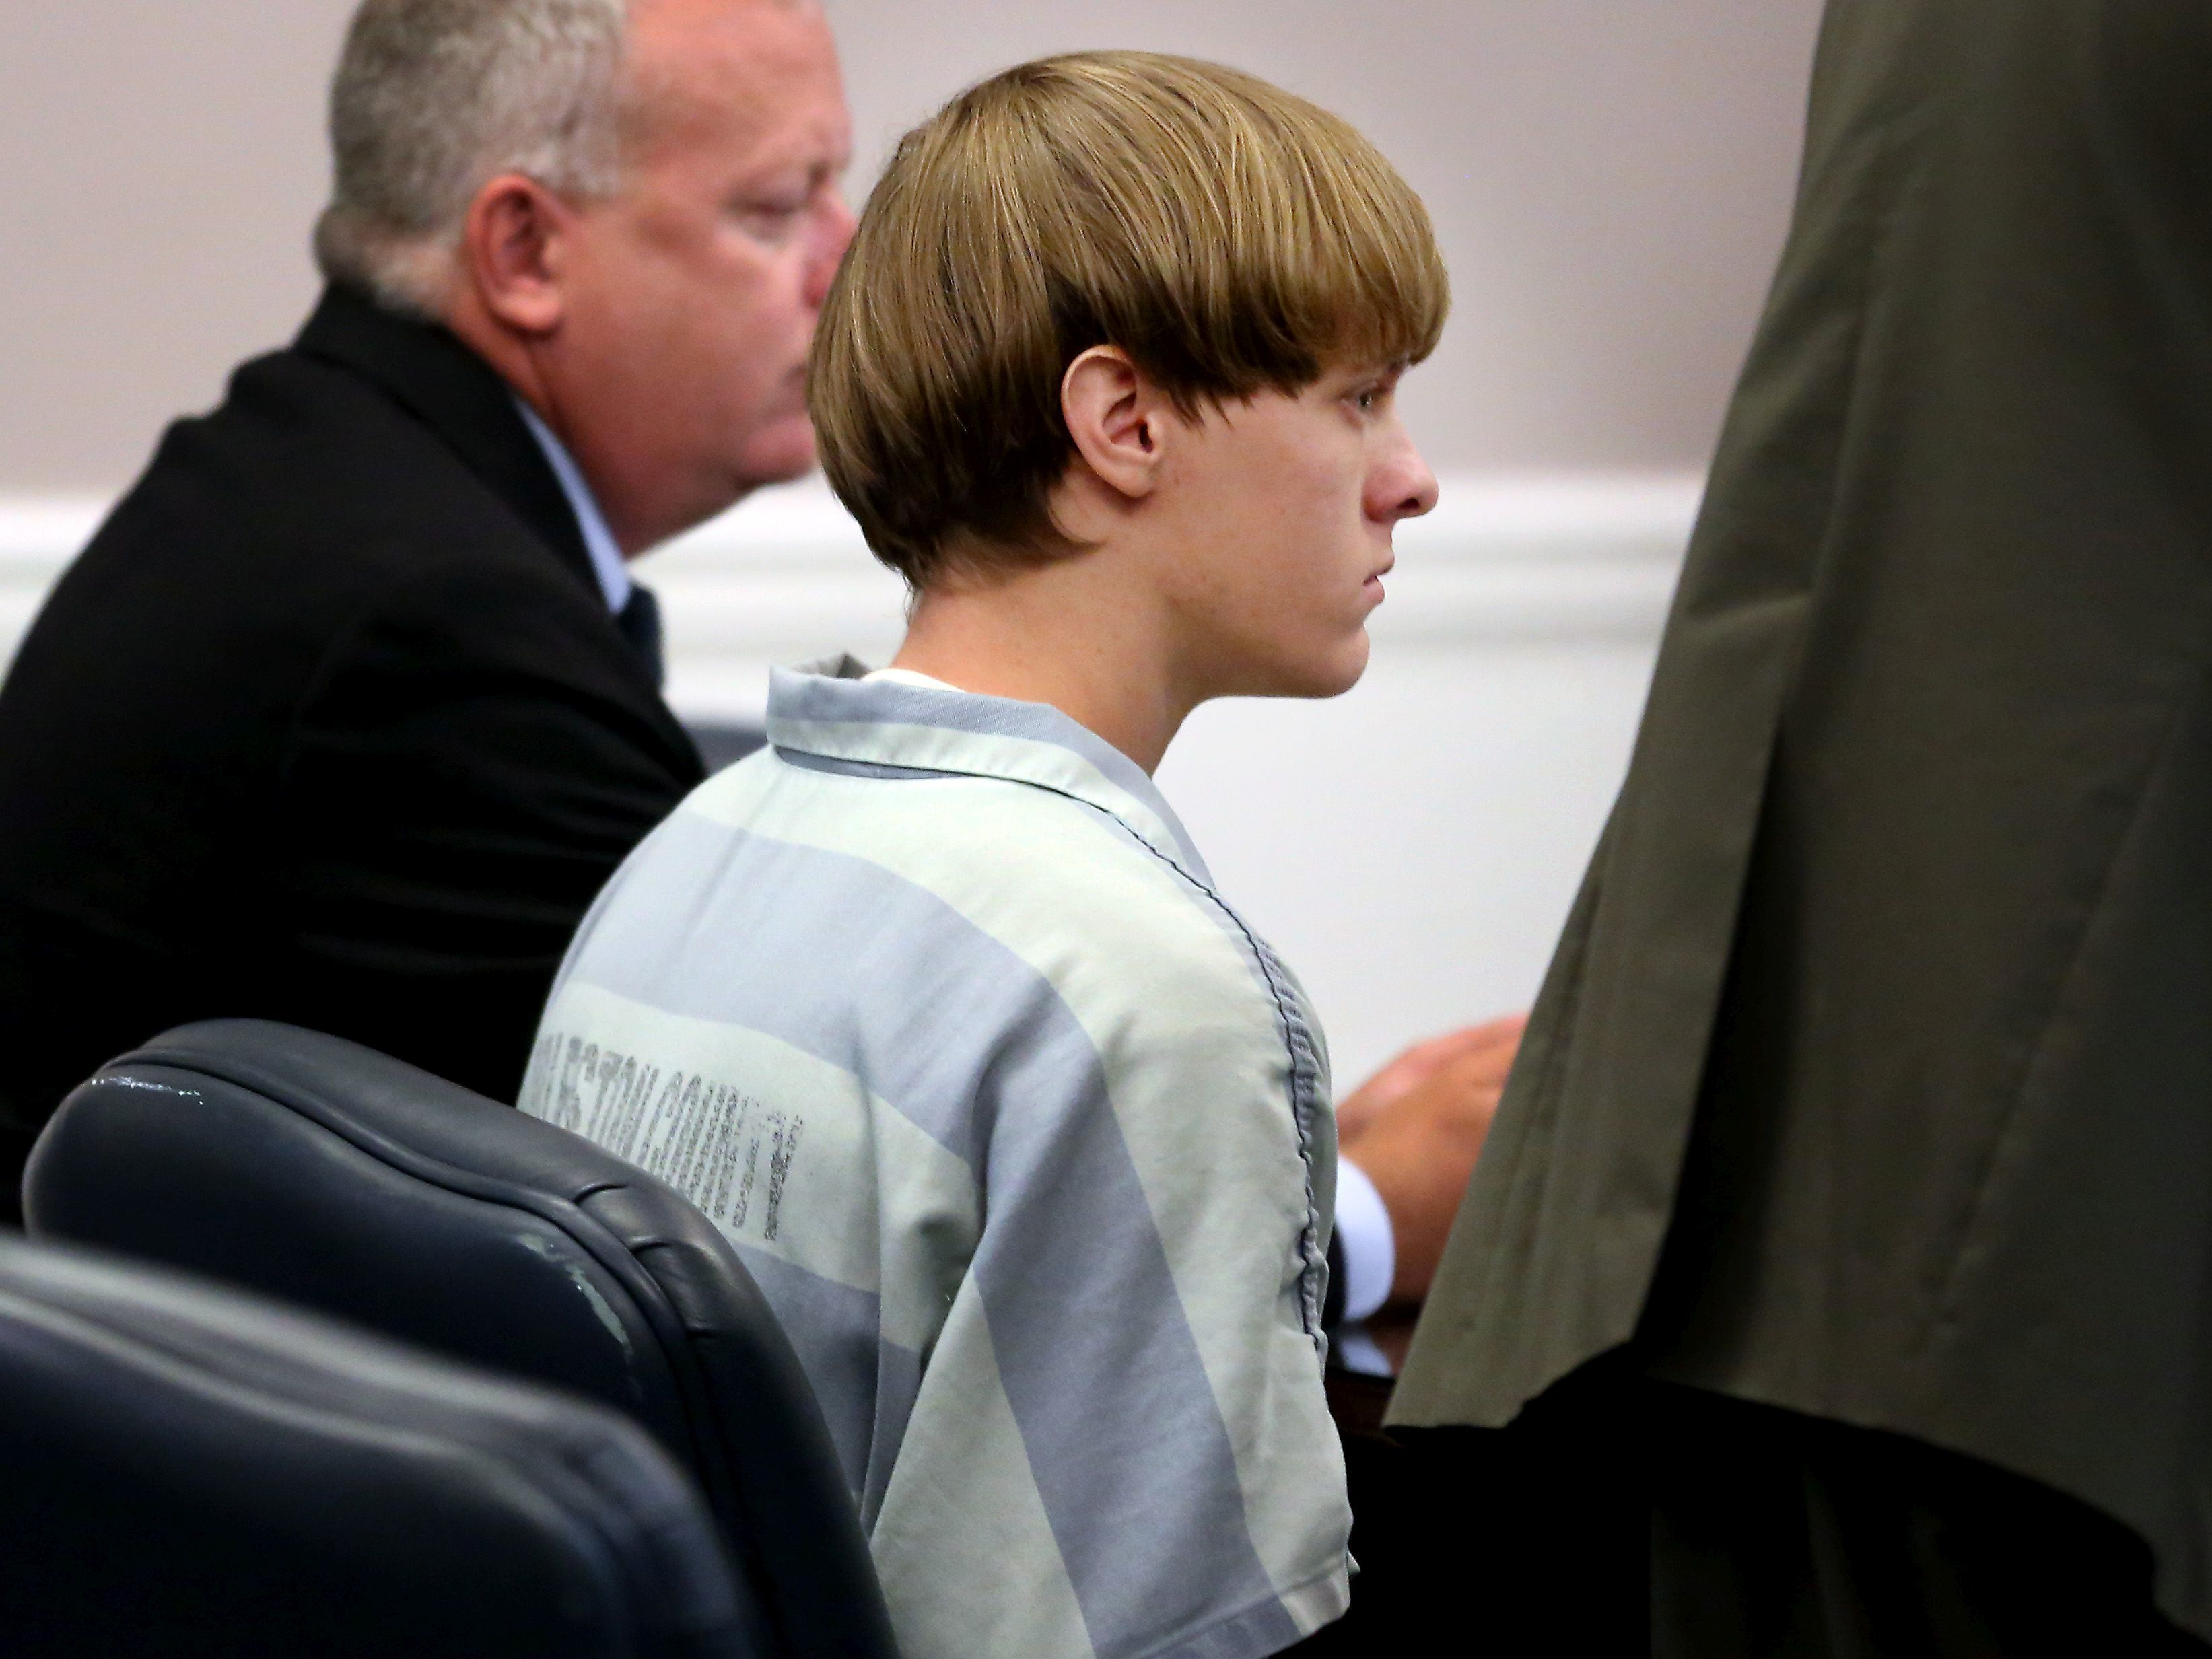 Charleston church shooter Dylann Roof confesses, 'I am not sorry'